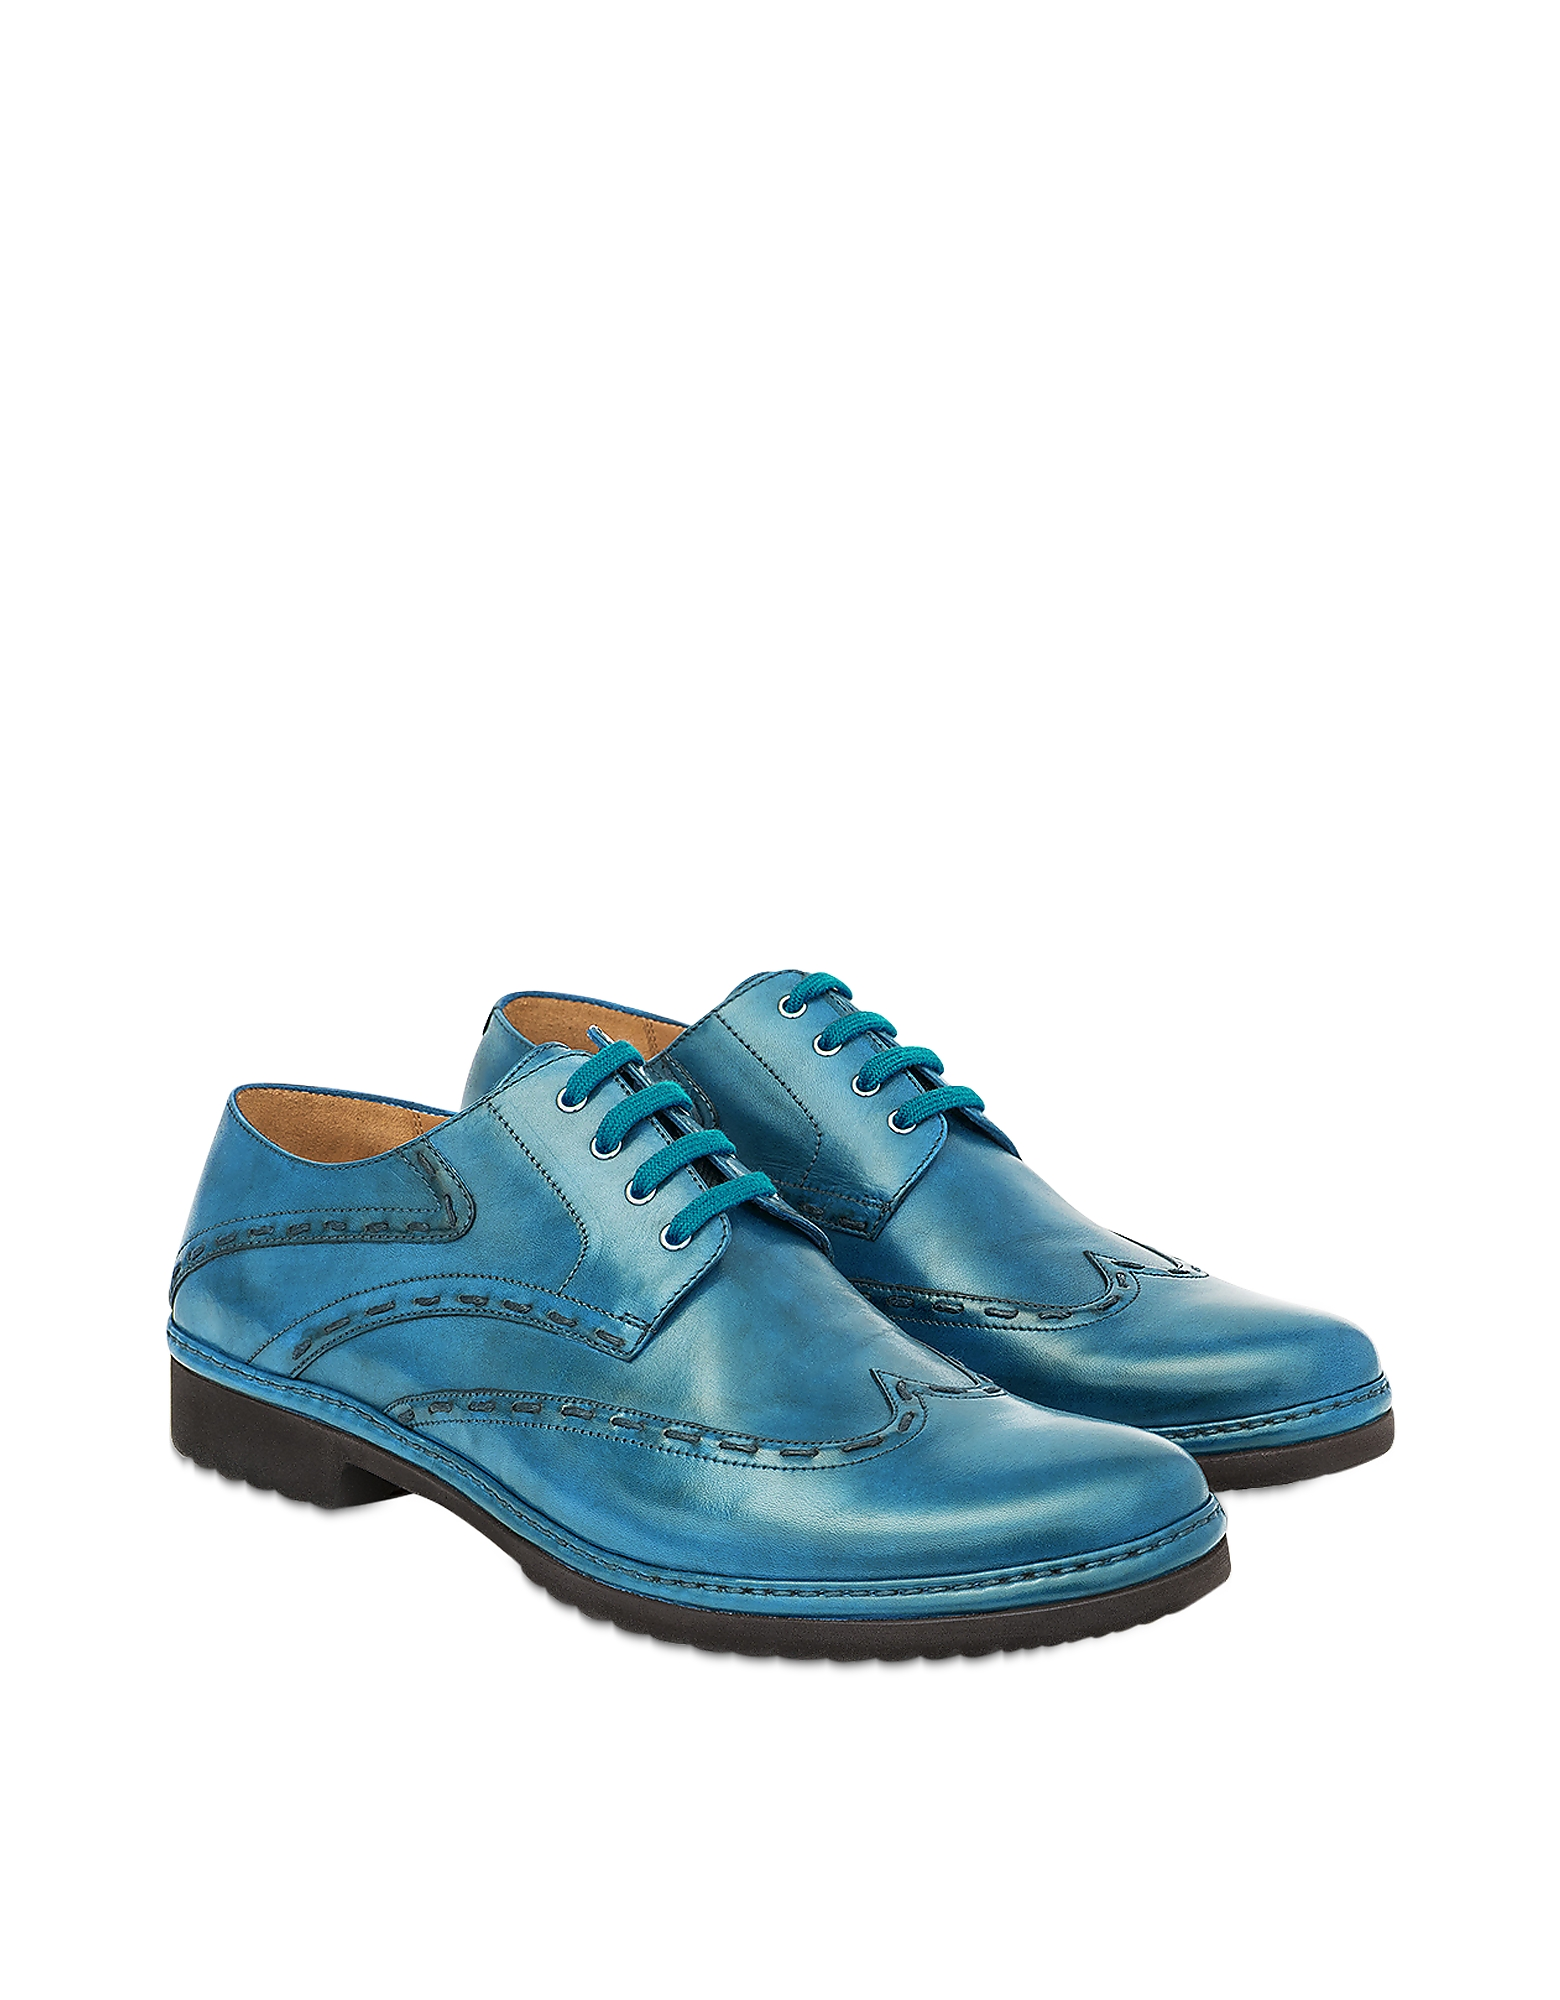 Pakerson Designer Shoes, Sky Cortona Derby Shoes